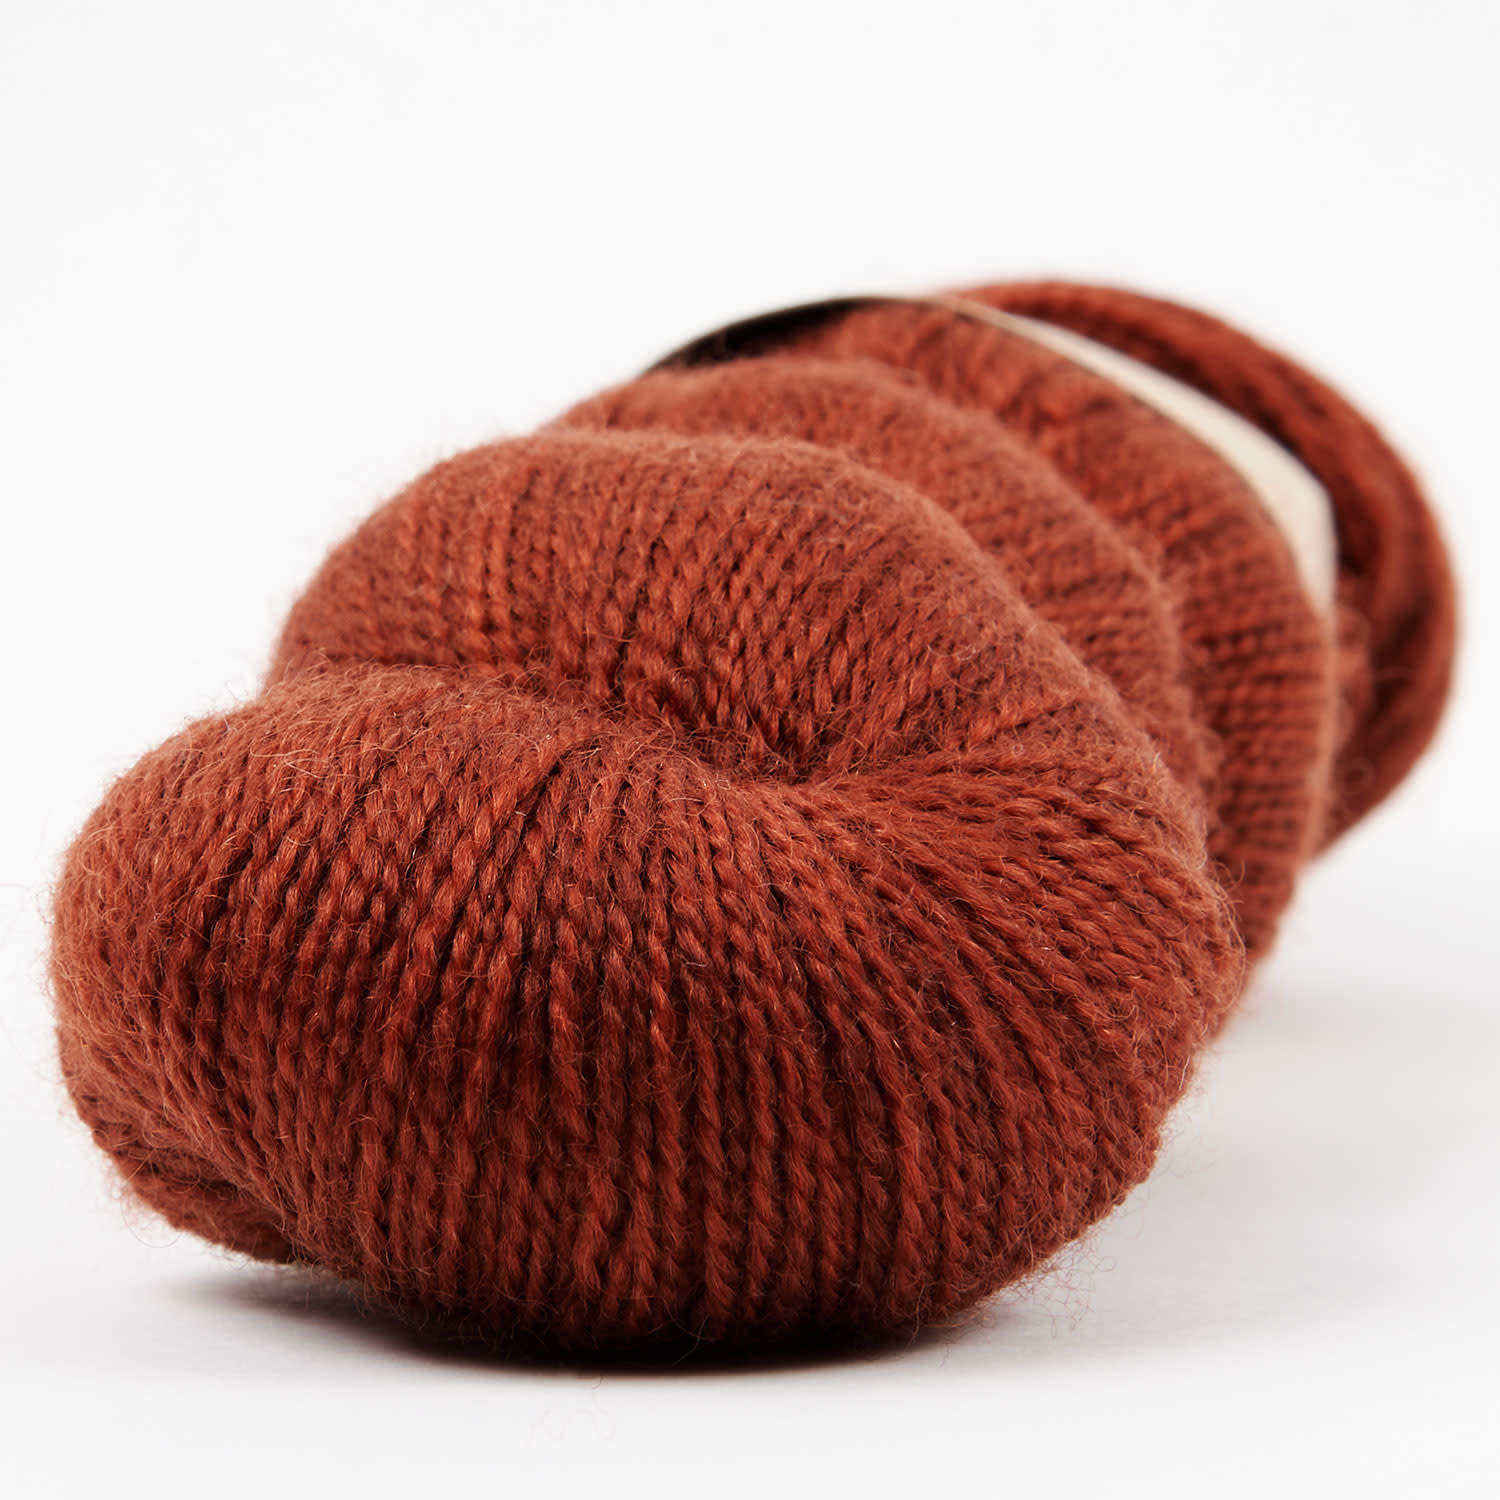 Susan Crawford A ROOM OF MY OWN: BLUEM SOCK - DOCK SEED